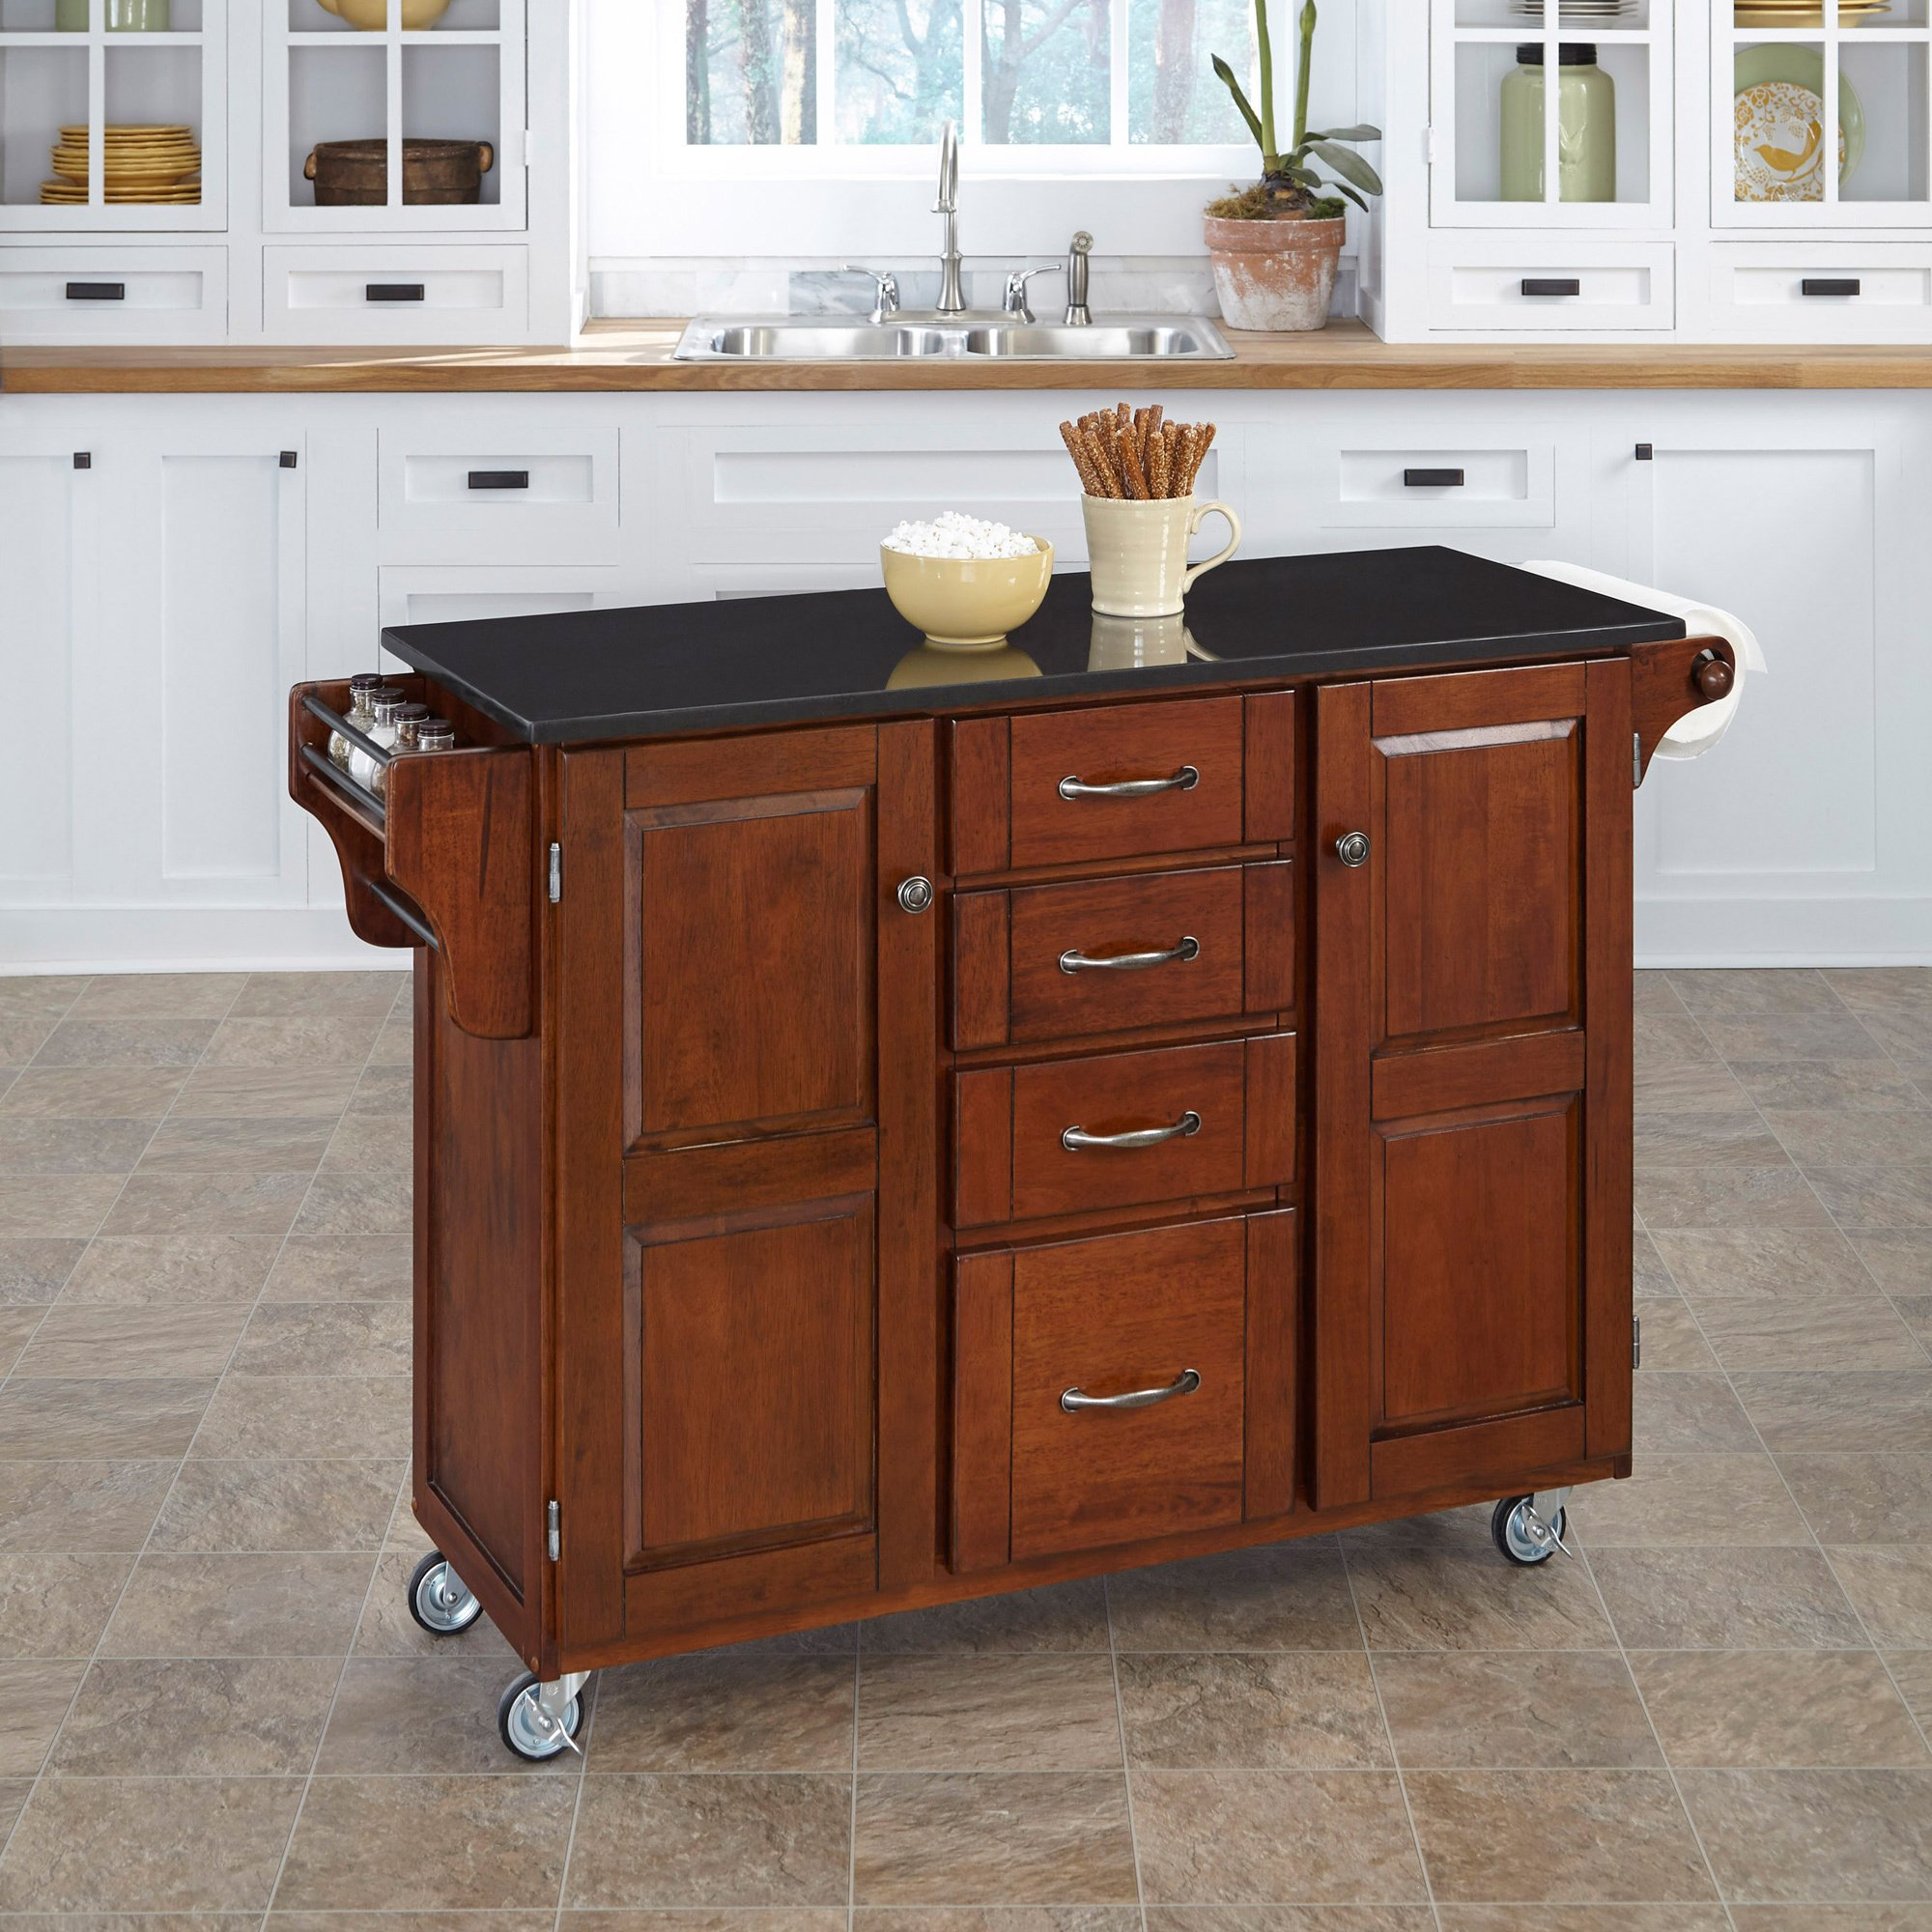 Beautiful Hardwood Kitchen Cart with a Nice Cherry Finish That Features a Black Granite Top with Plenty of Storage for Small Kitchens. Mouse Pad Included